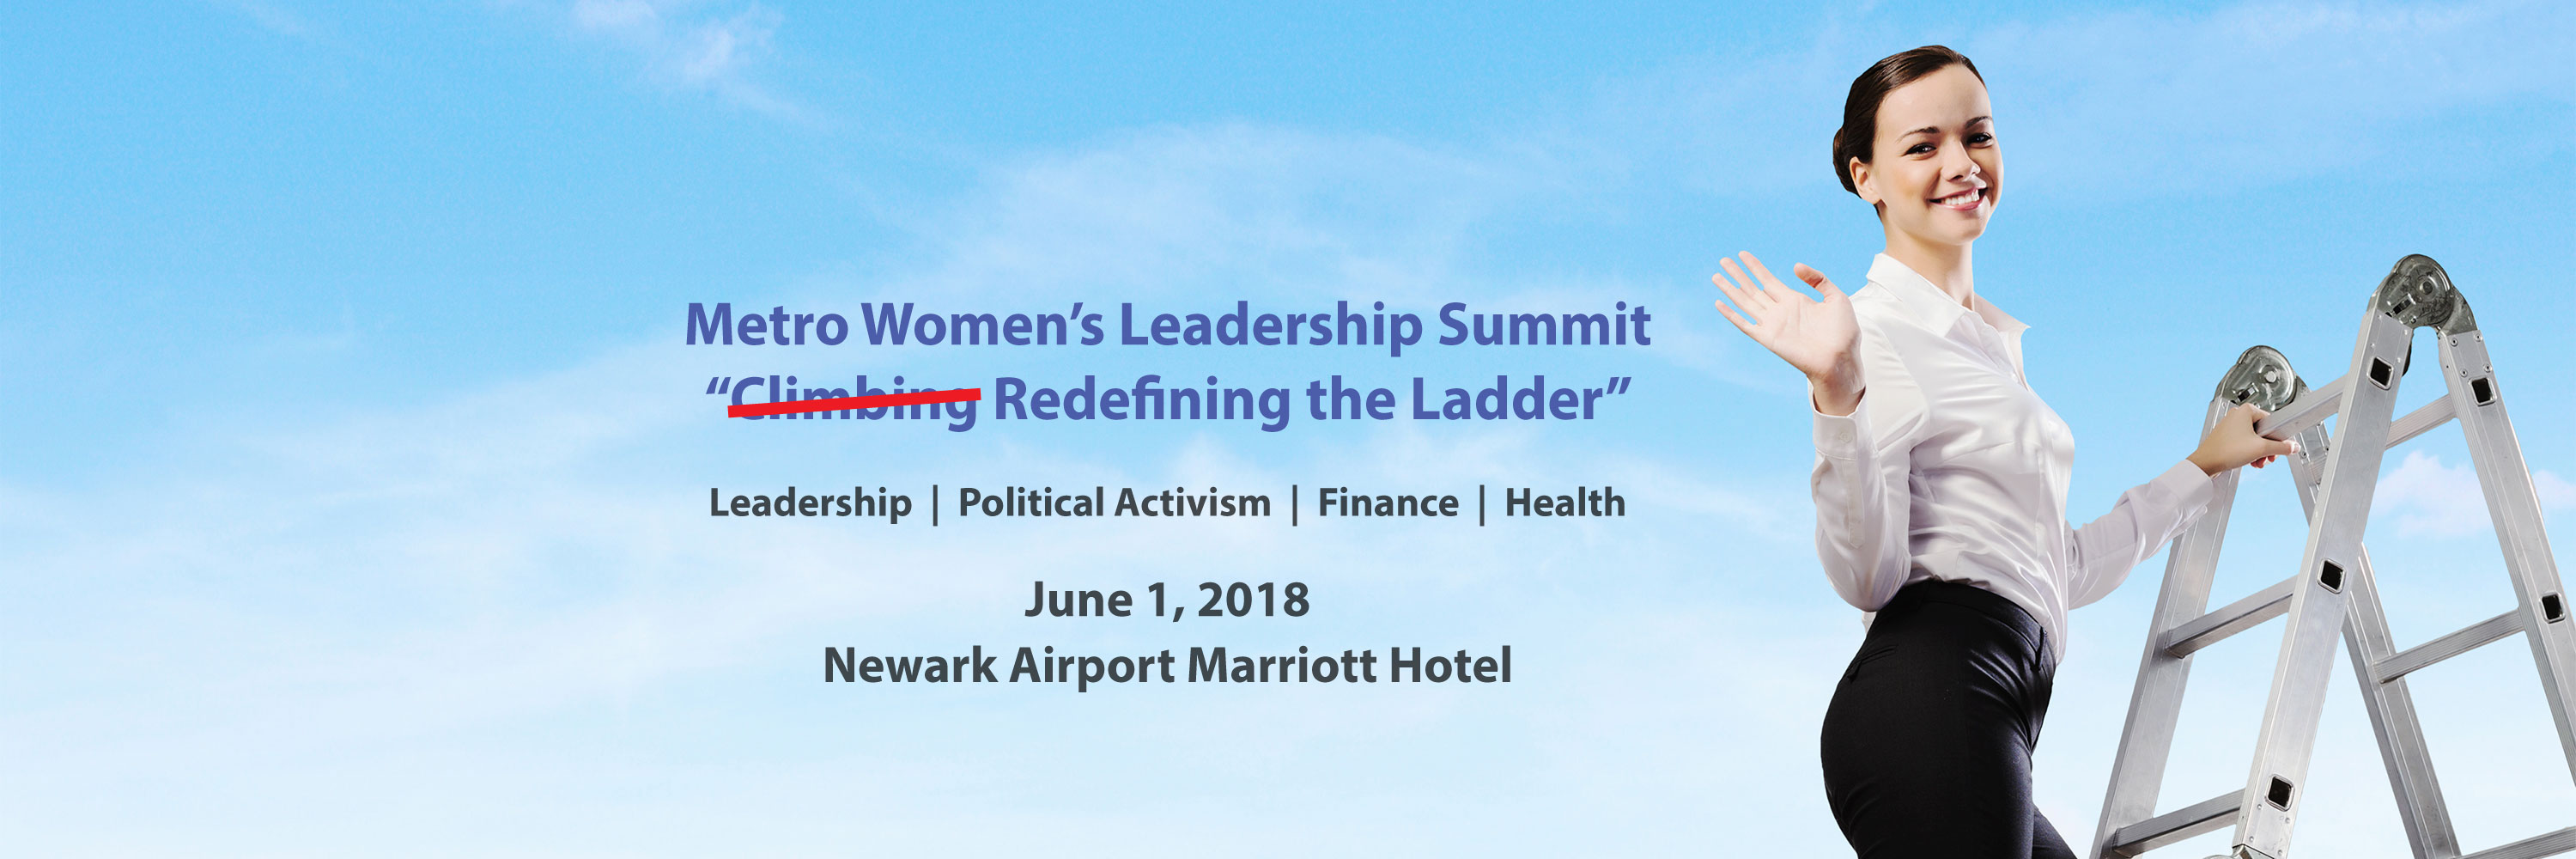 Metro Women's Leadership Summit